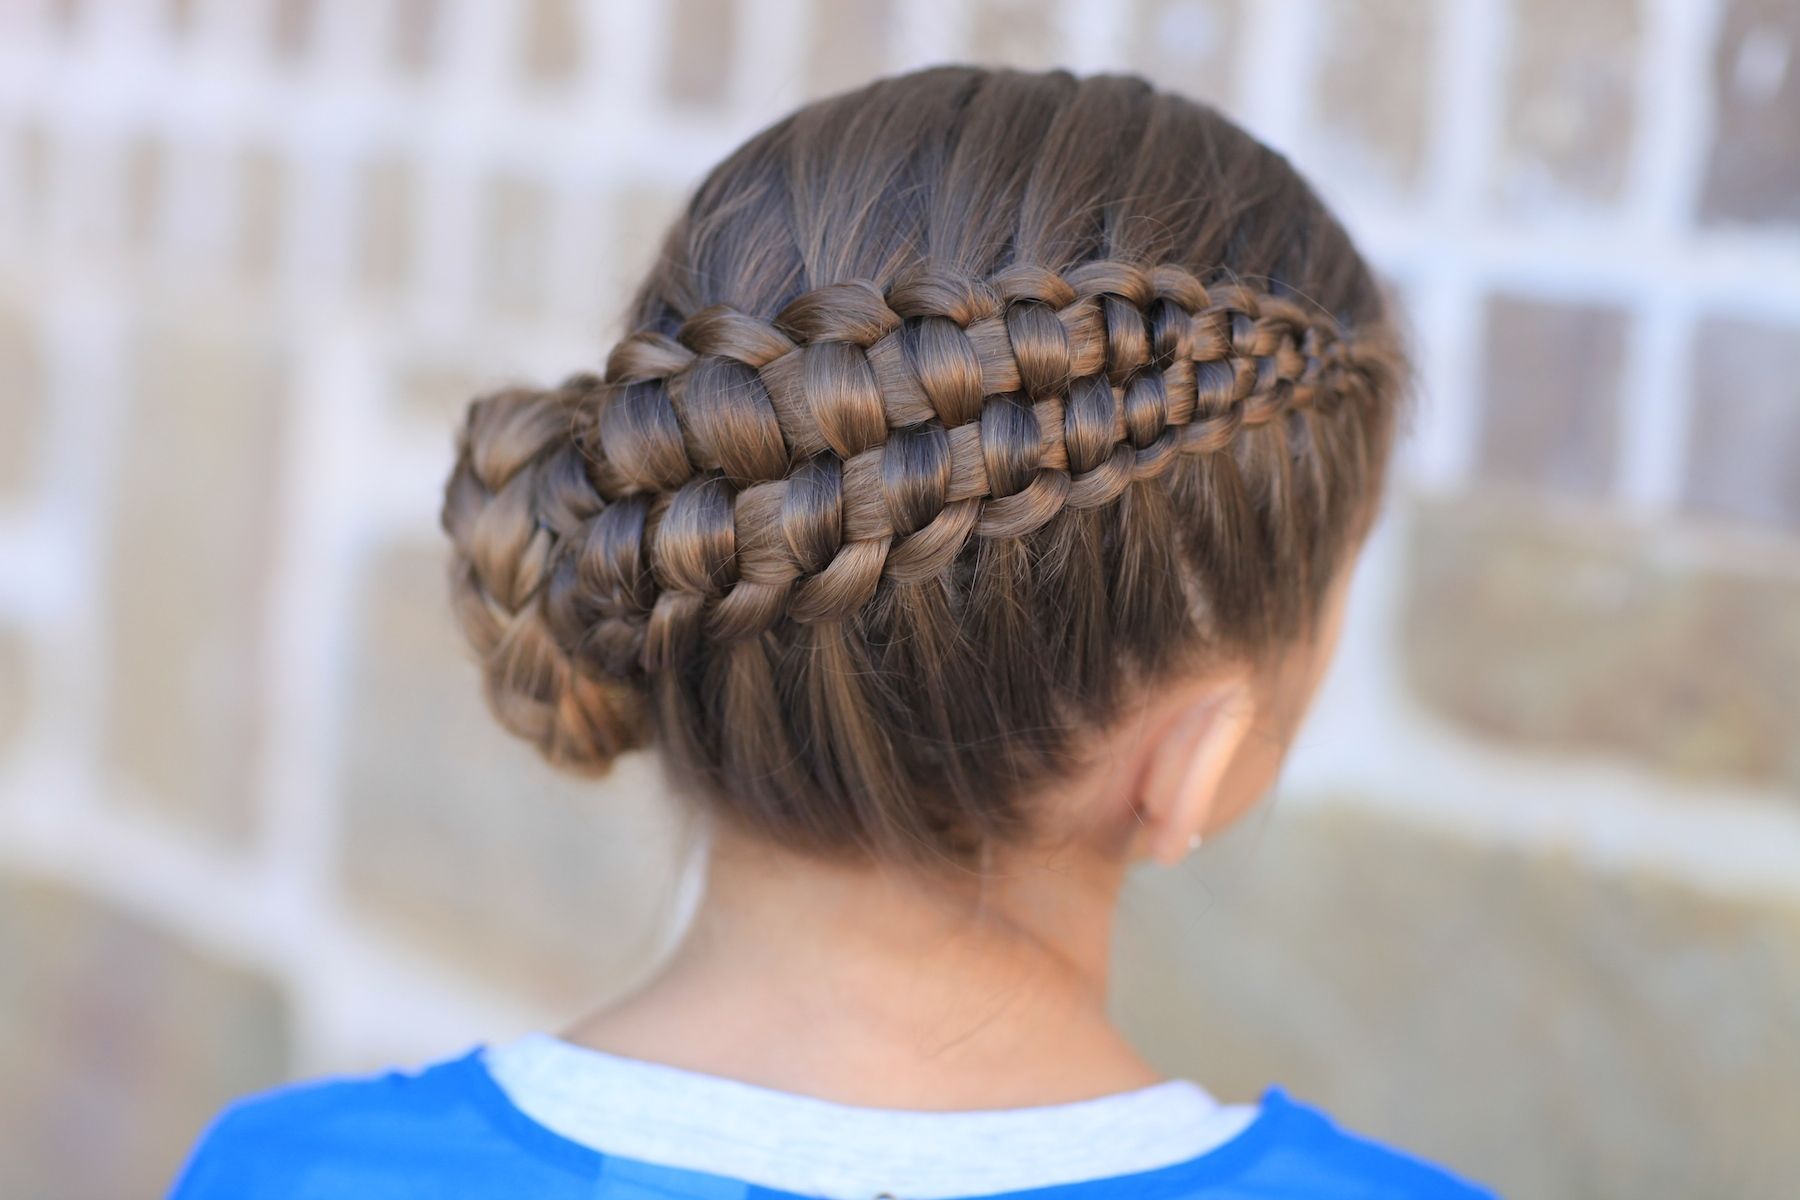 40 Different Types Of Braids | Zipper braid, Updo and Hair style